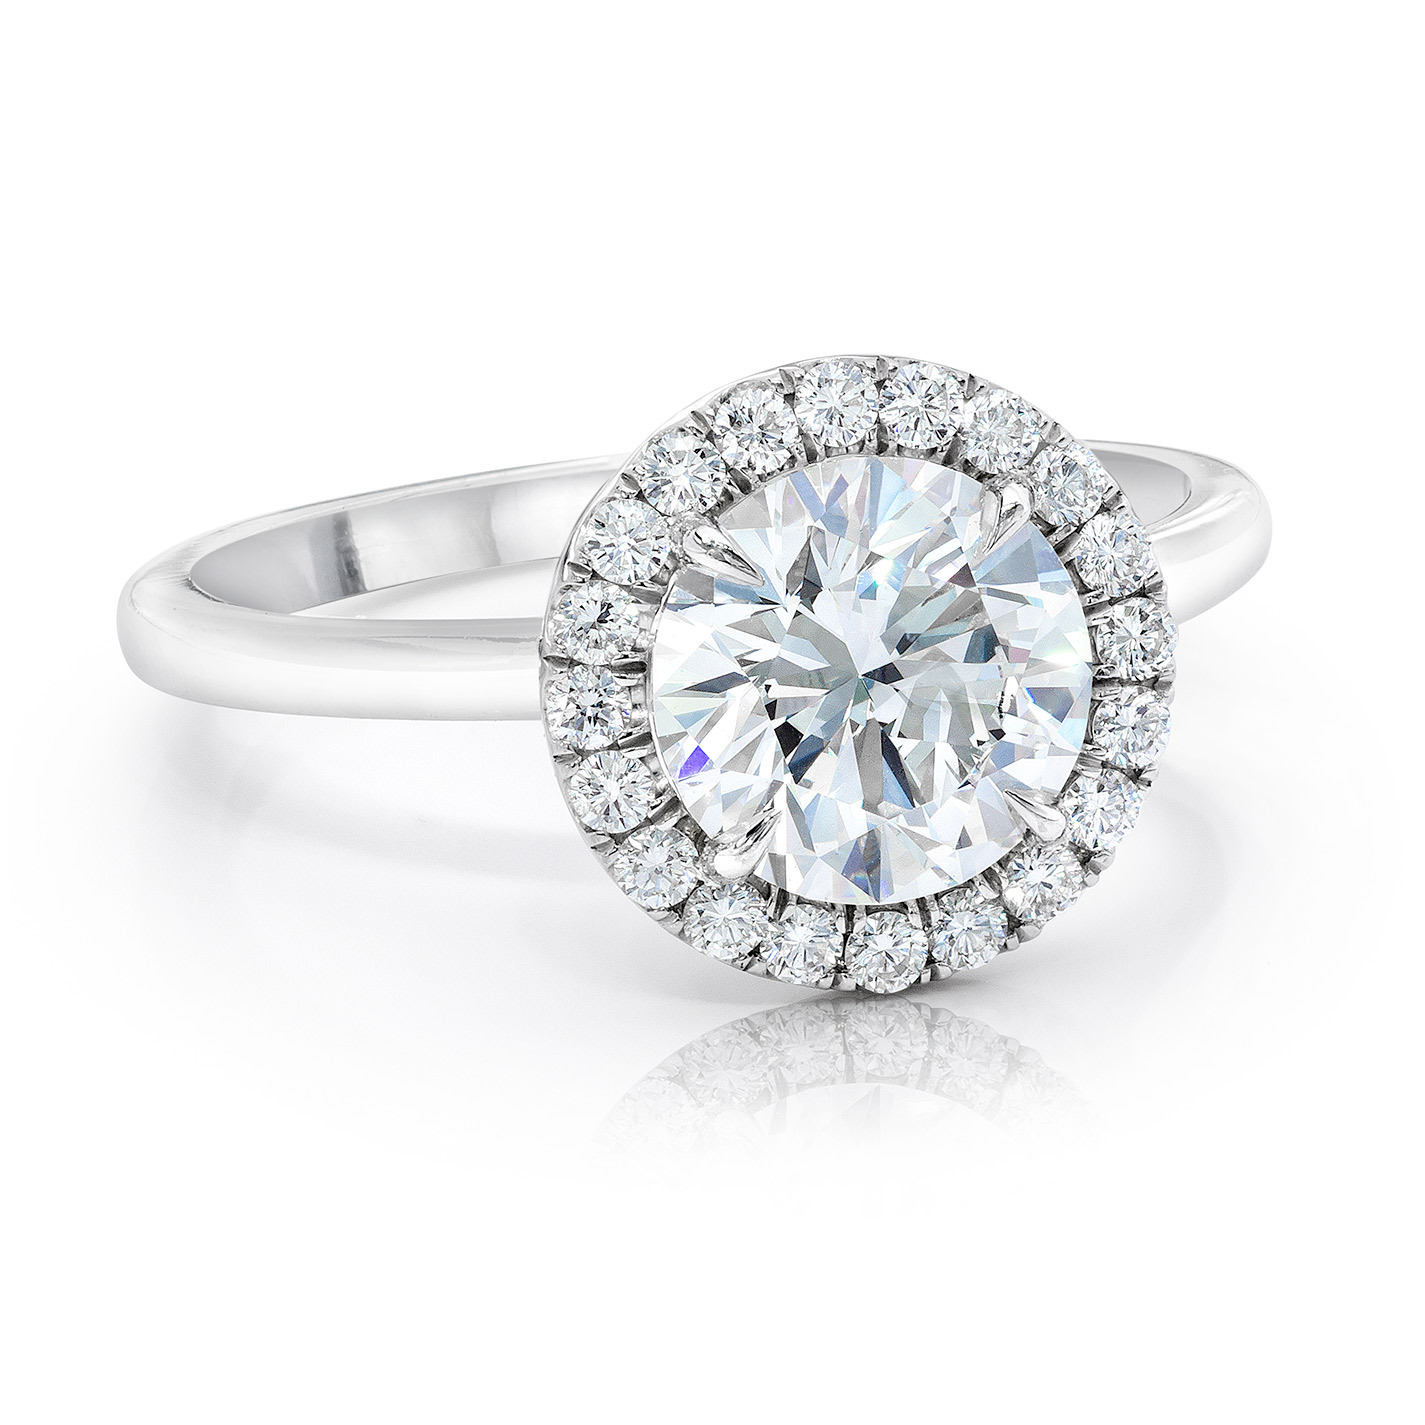 Round Brilliant Diamond Halo Solitaire Ring In Platinum - See more at: http://www.gemplatinum.com/collections/gem-platinum/rings/jeffrey-daniels-diamond-ring.html#sthash.csmDdveJ.dpuf